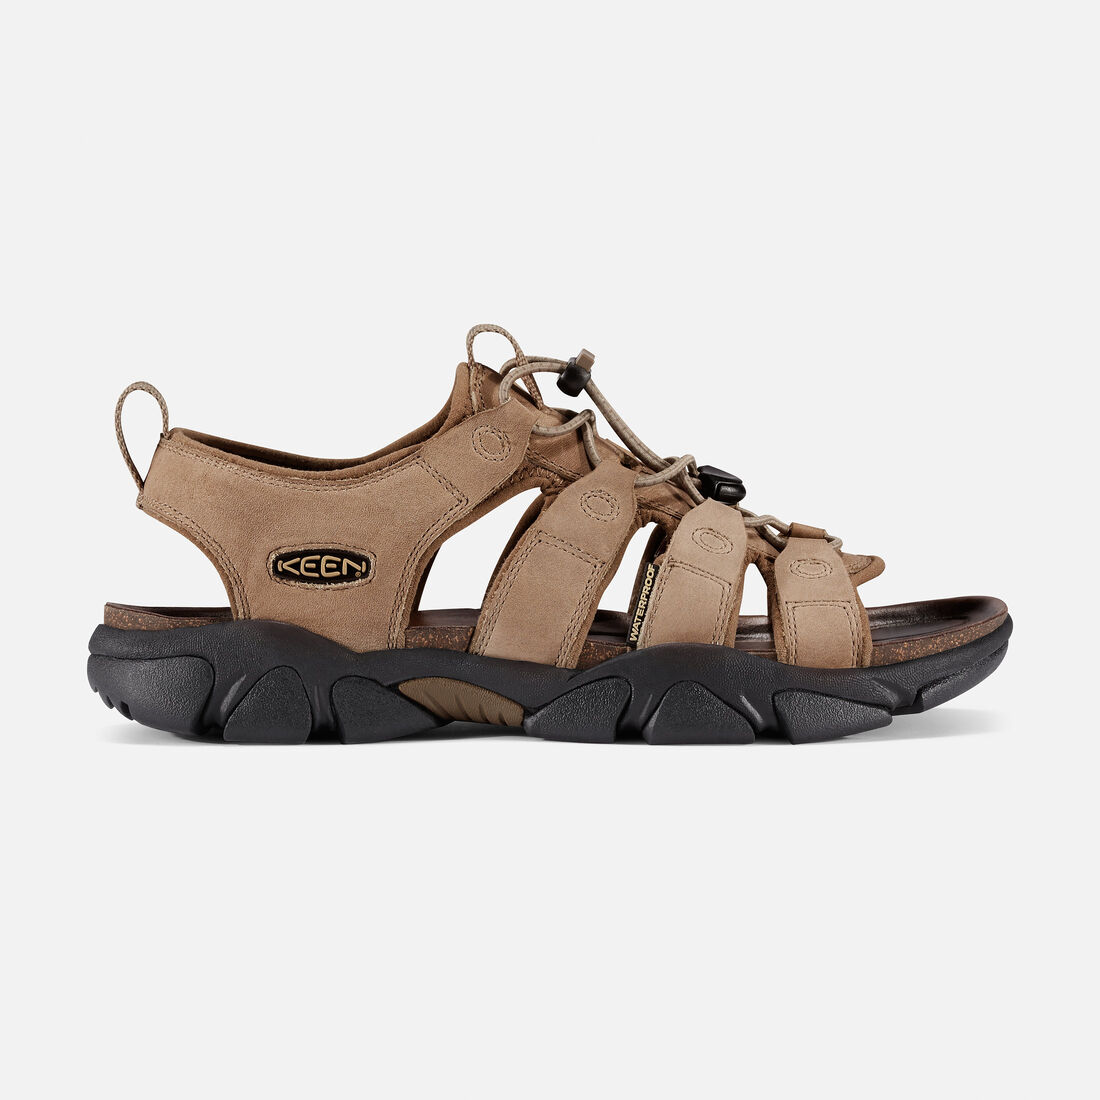 MEN'S DAYTONA SANDALS in Timberwolf - large view.